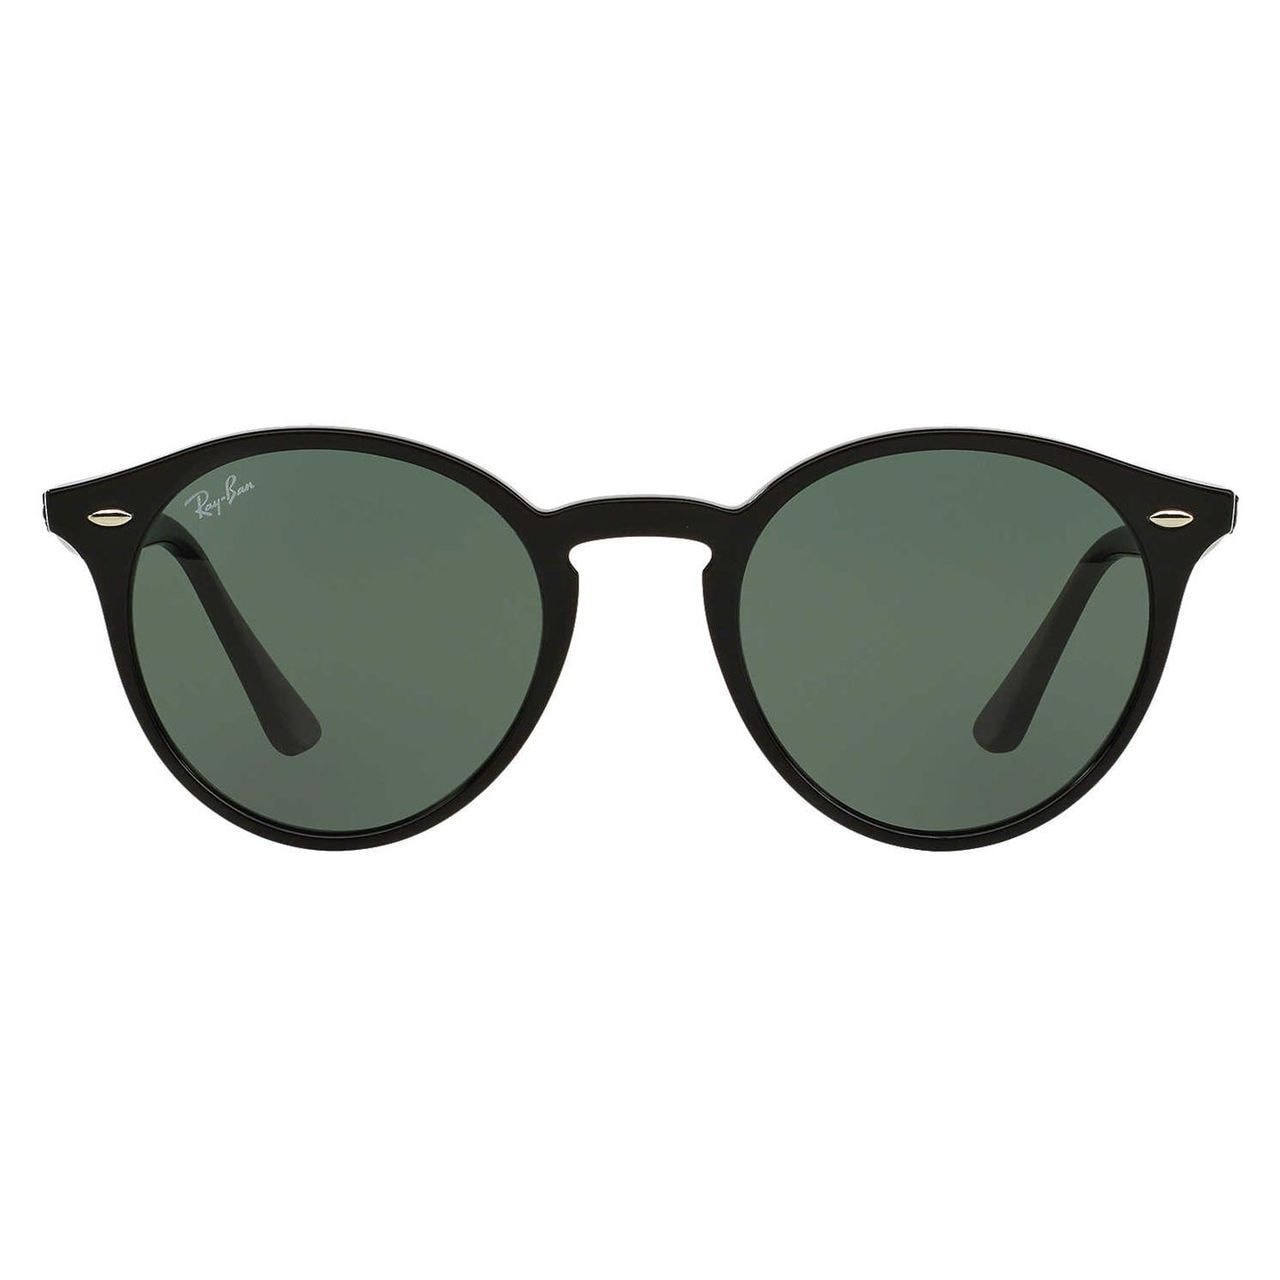 2157974a722 Shop Ray-Ban Unisex RB 2180 600.141 Shiny Black Plastic Round Sunglasses -  Free Shipping Today - Overstock - 10479799